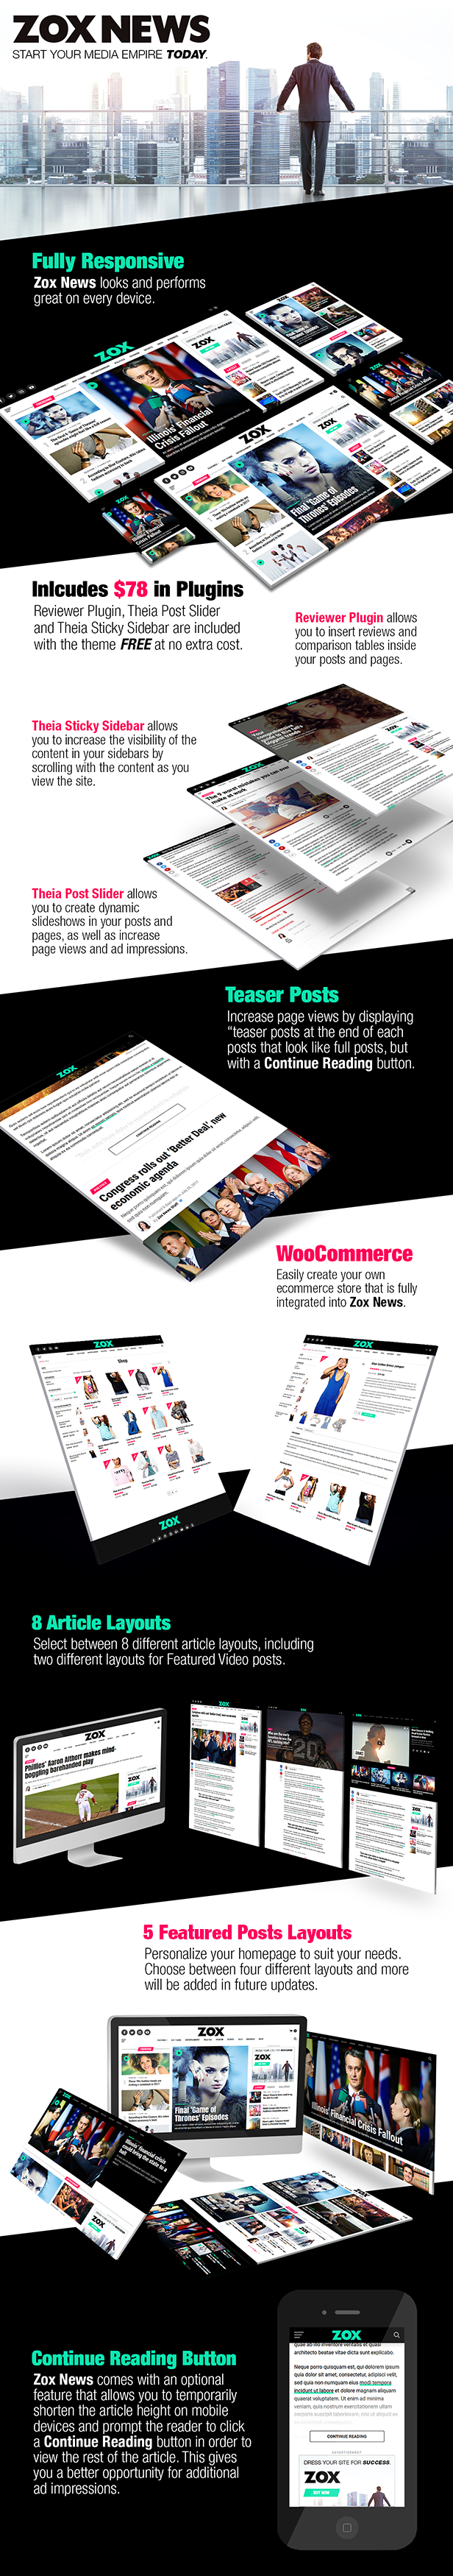 Zox News - Professional WordPress News & Magazine Theme - 2